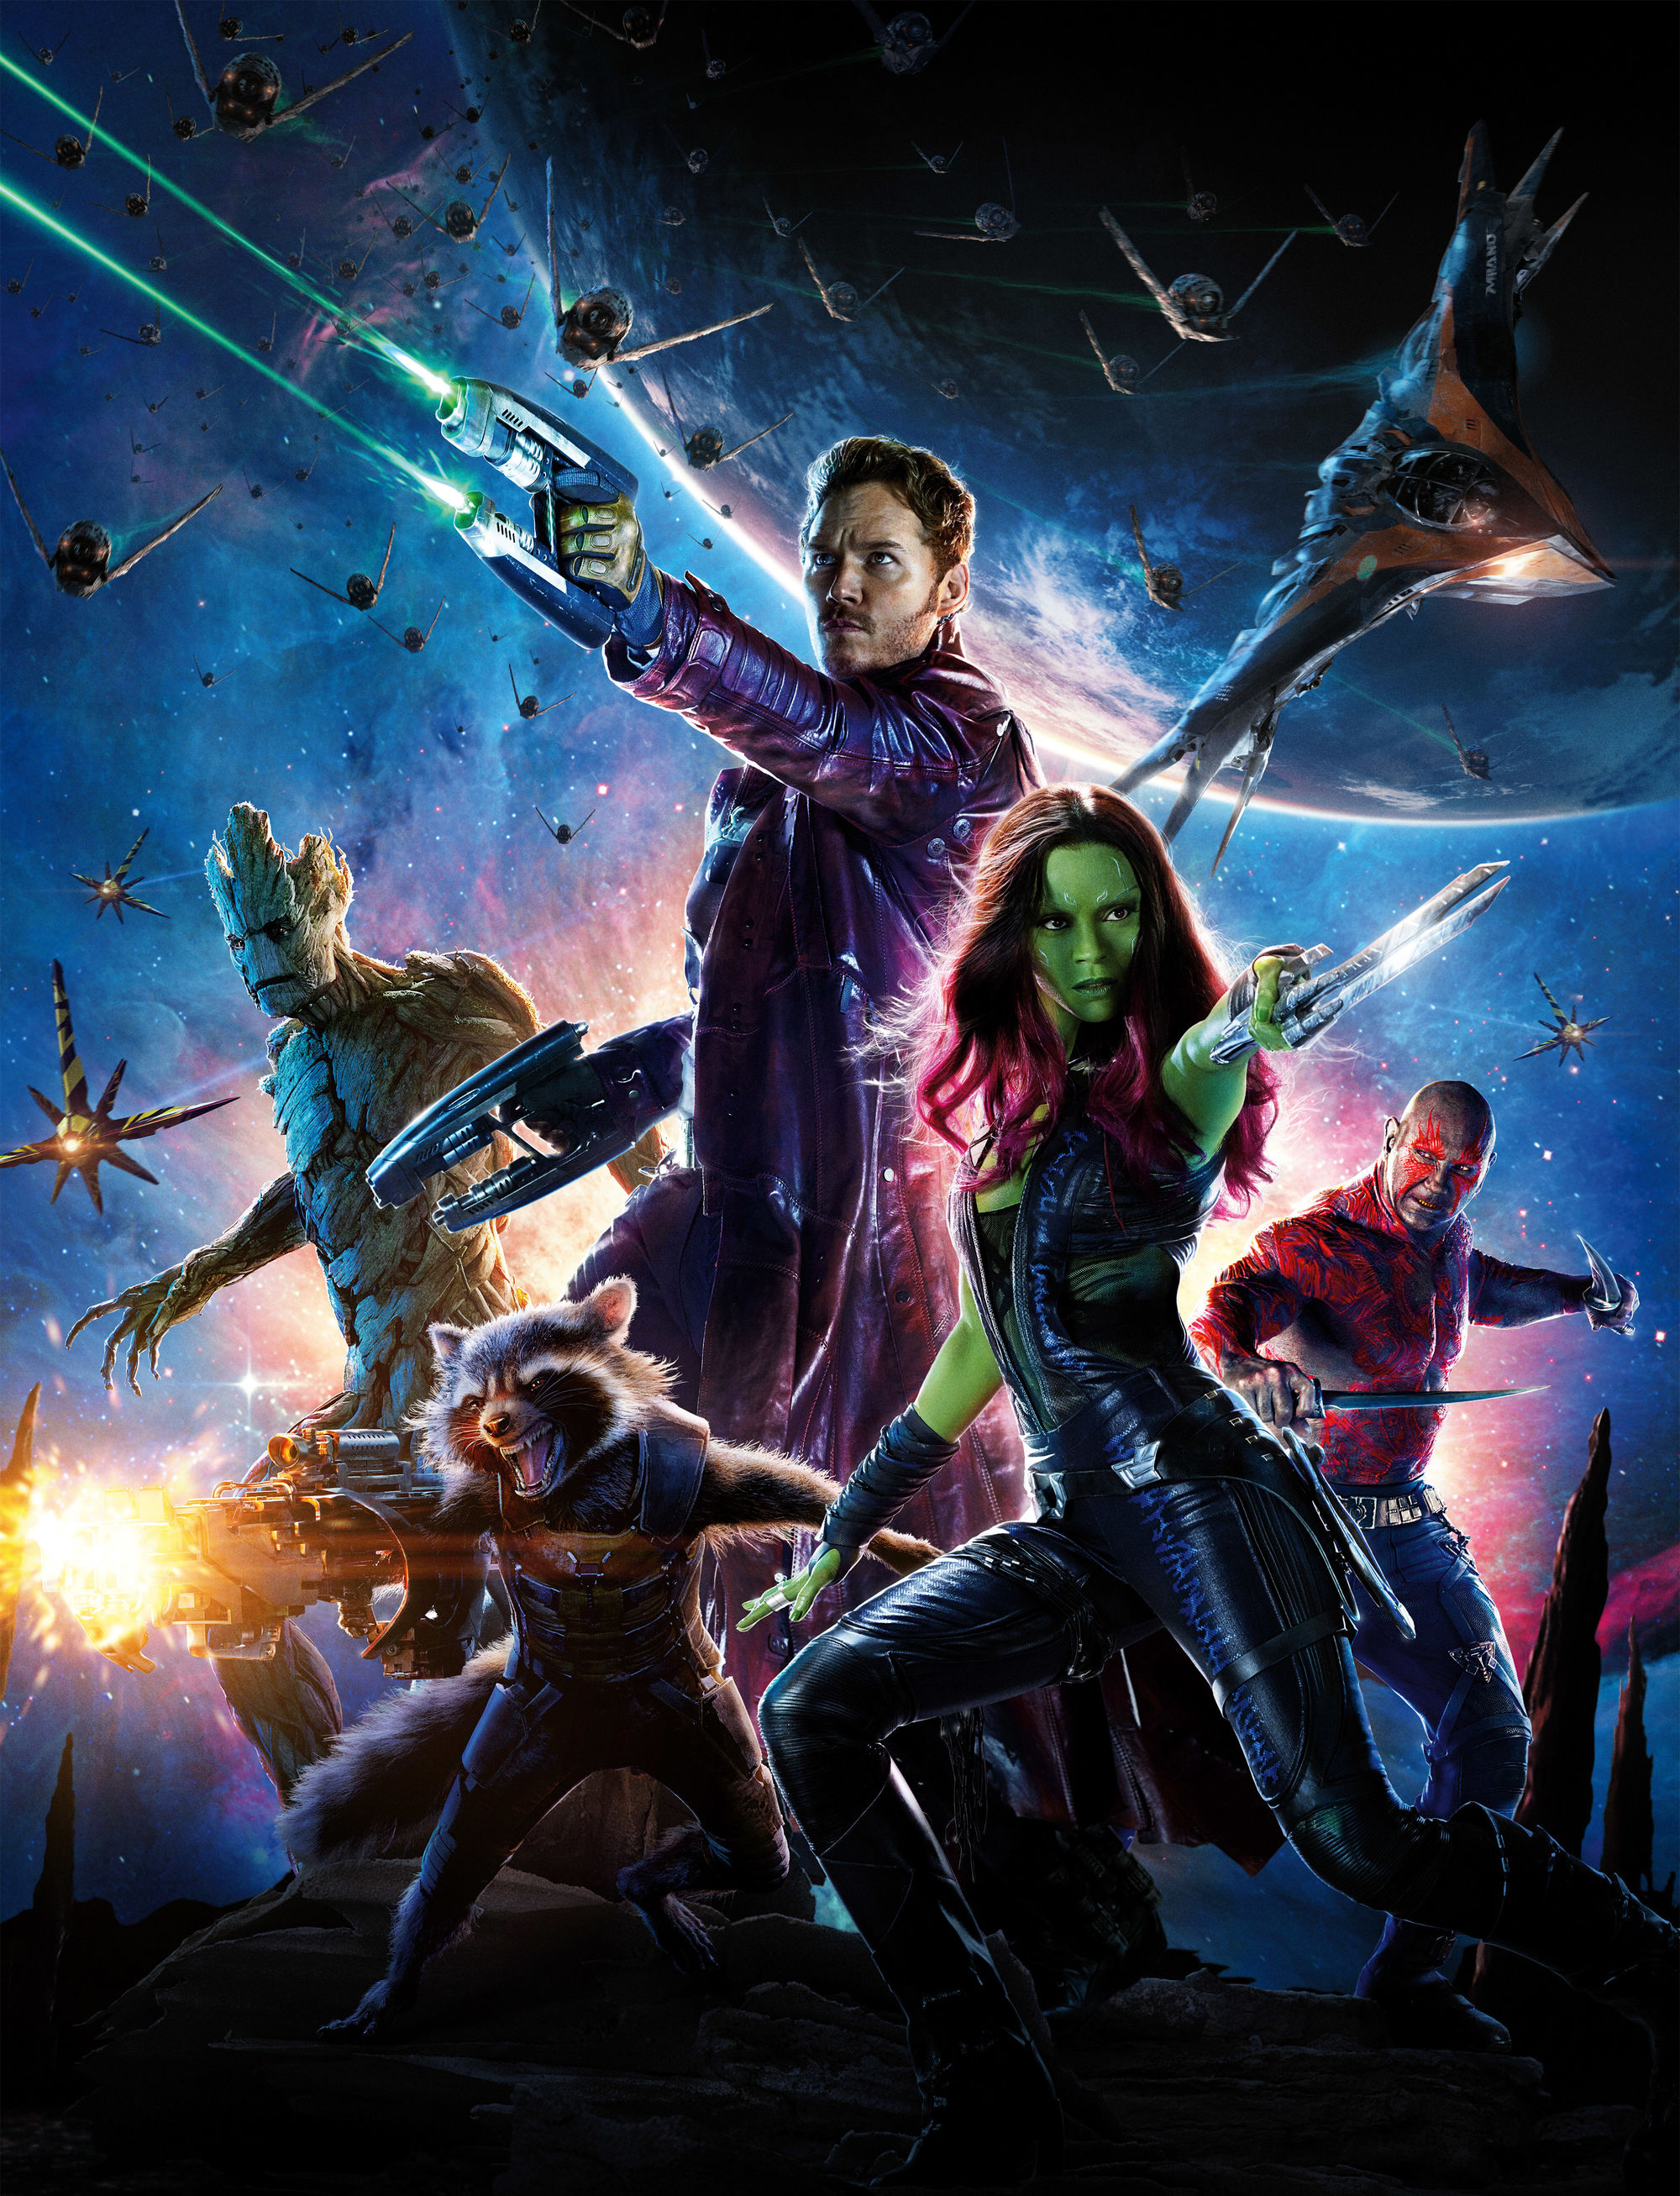 Guardians-of-the-Galaxy-Textless-Poster.jpg